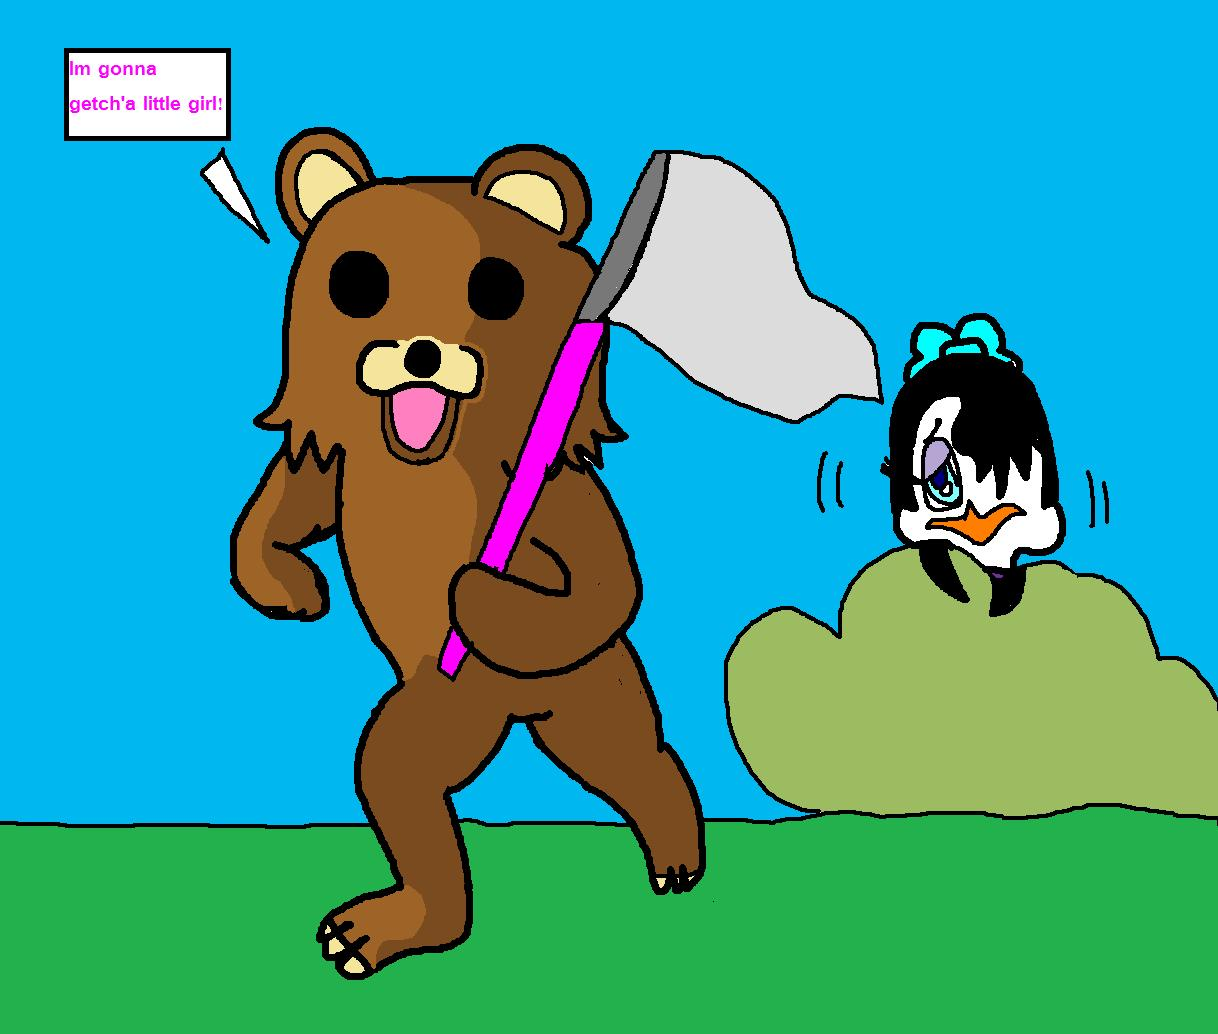 pedo bear pedo bear wants me!!!!! DX